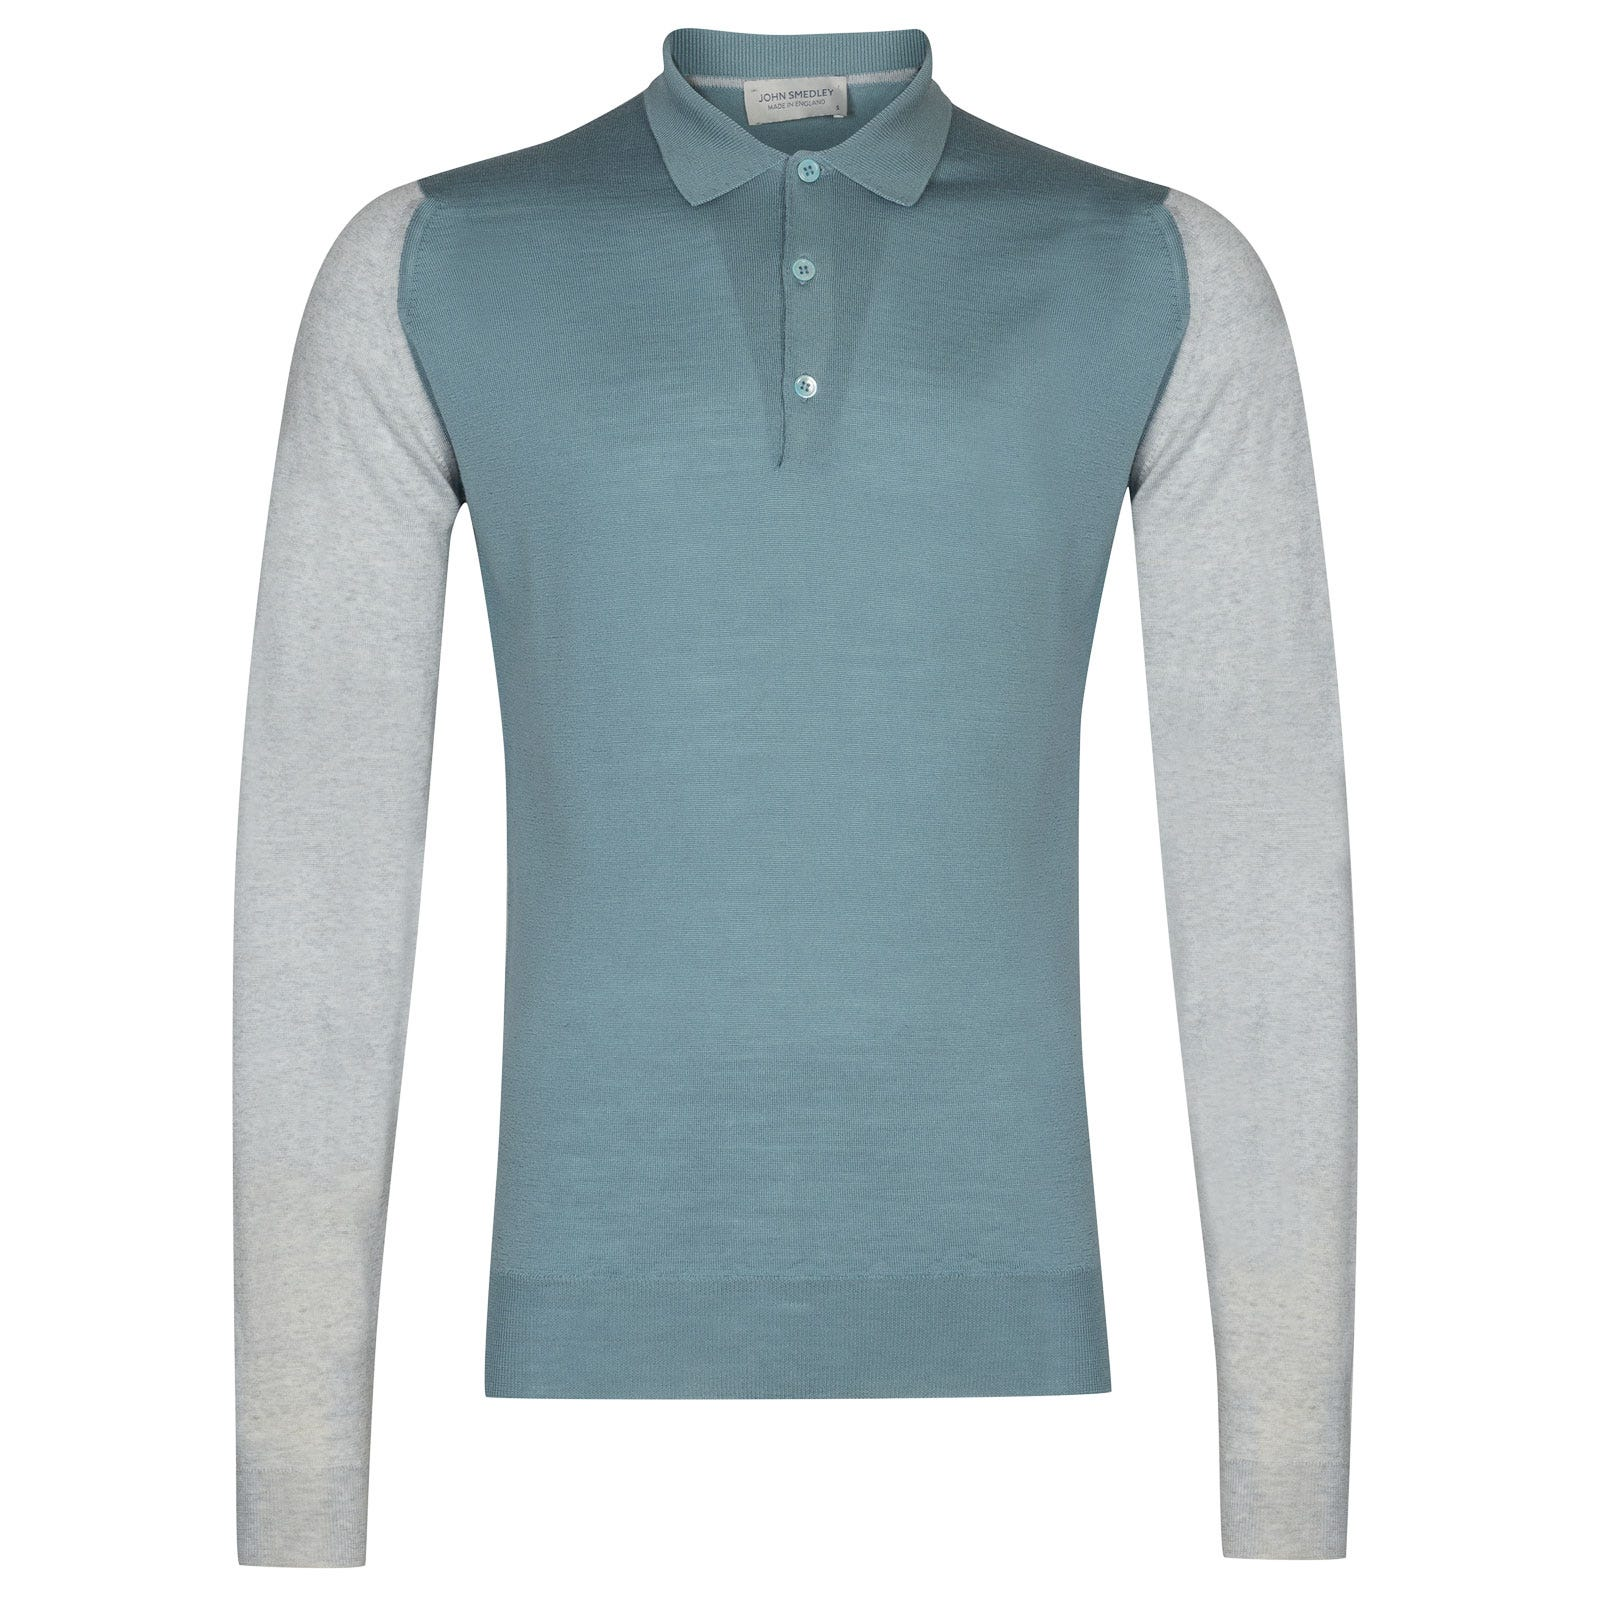 John Smedley Brightgate Merino Wool Shirt in Bardot Grey/Summit